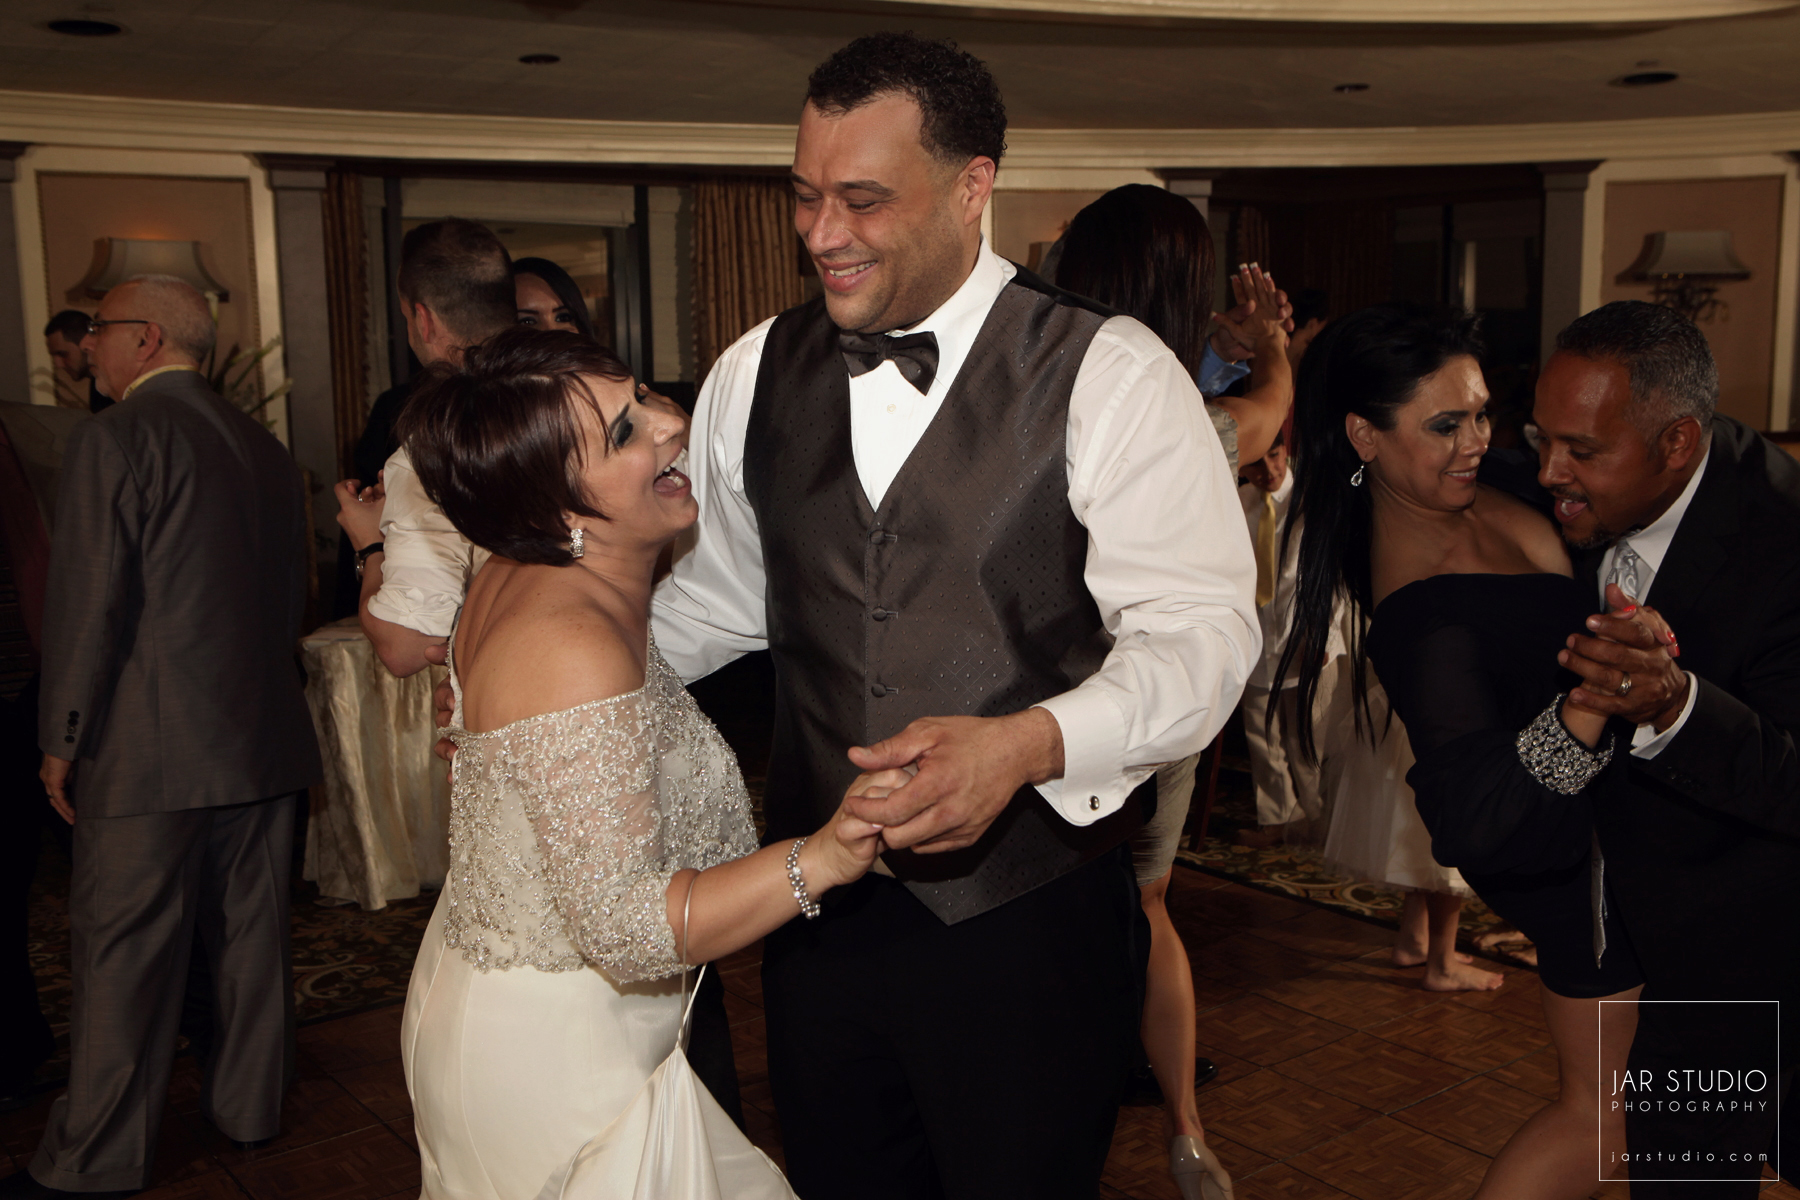 17-fun-wedding-dance-tampa-jar-studio-photography.JPG